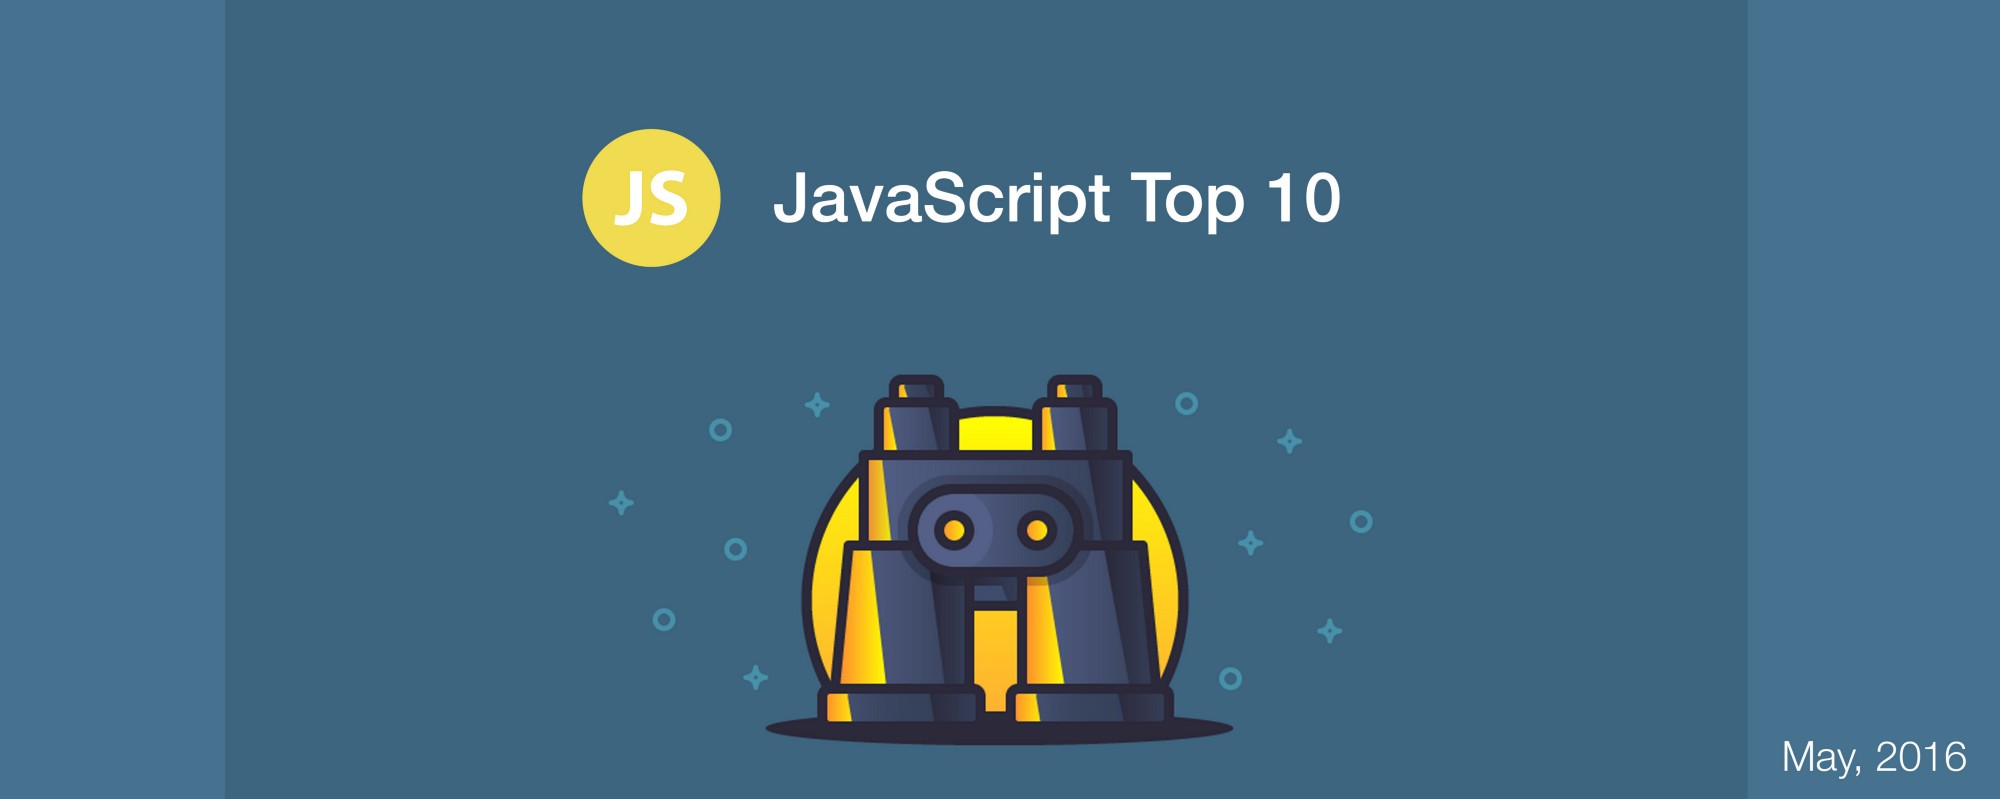 Top 10 JavaScript Articles from Last Month. (v.May)